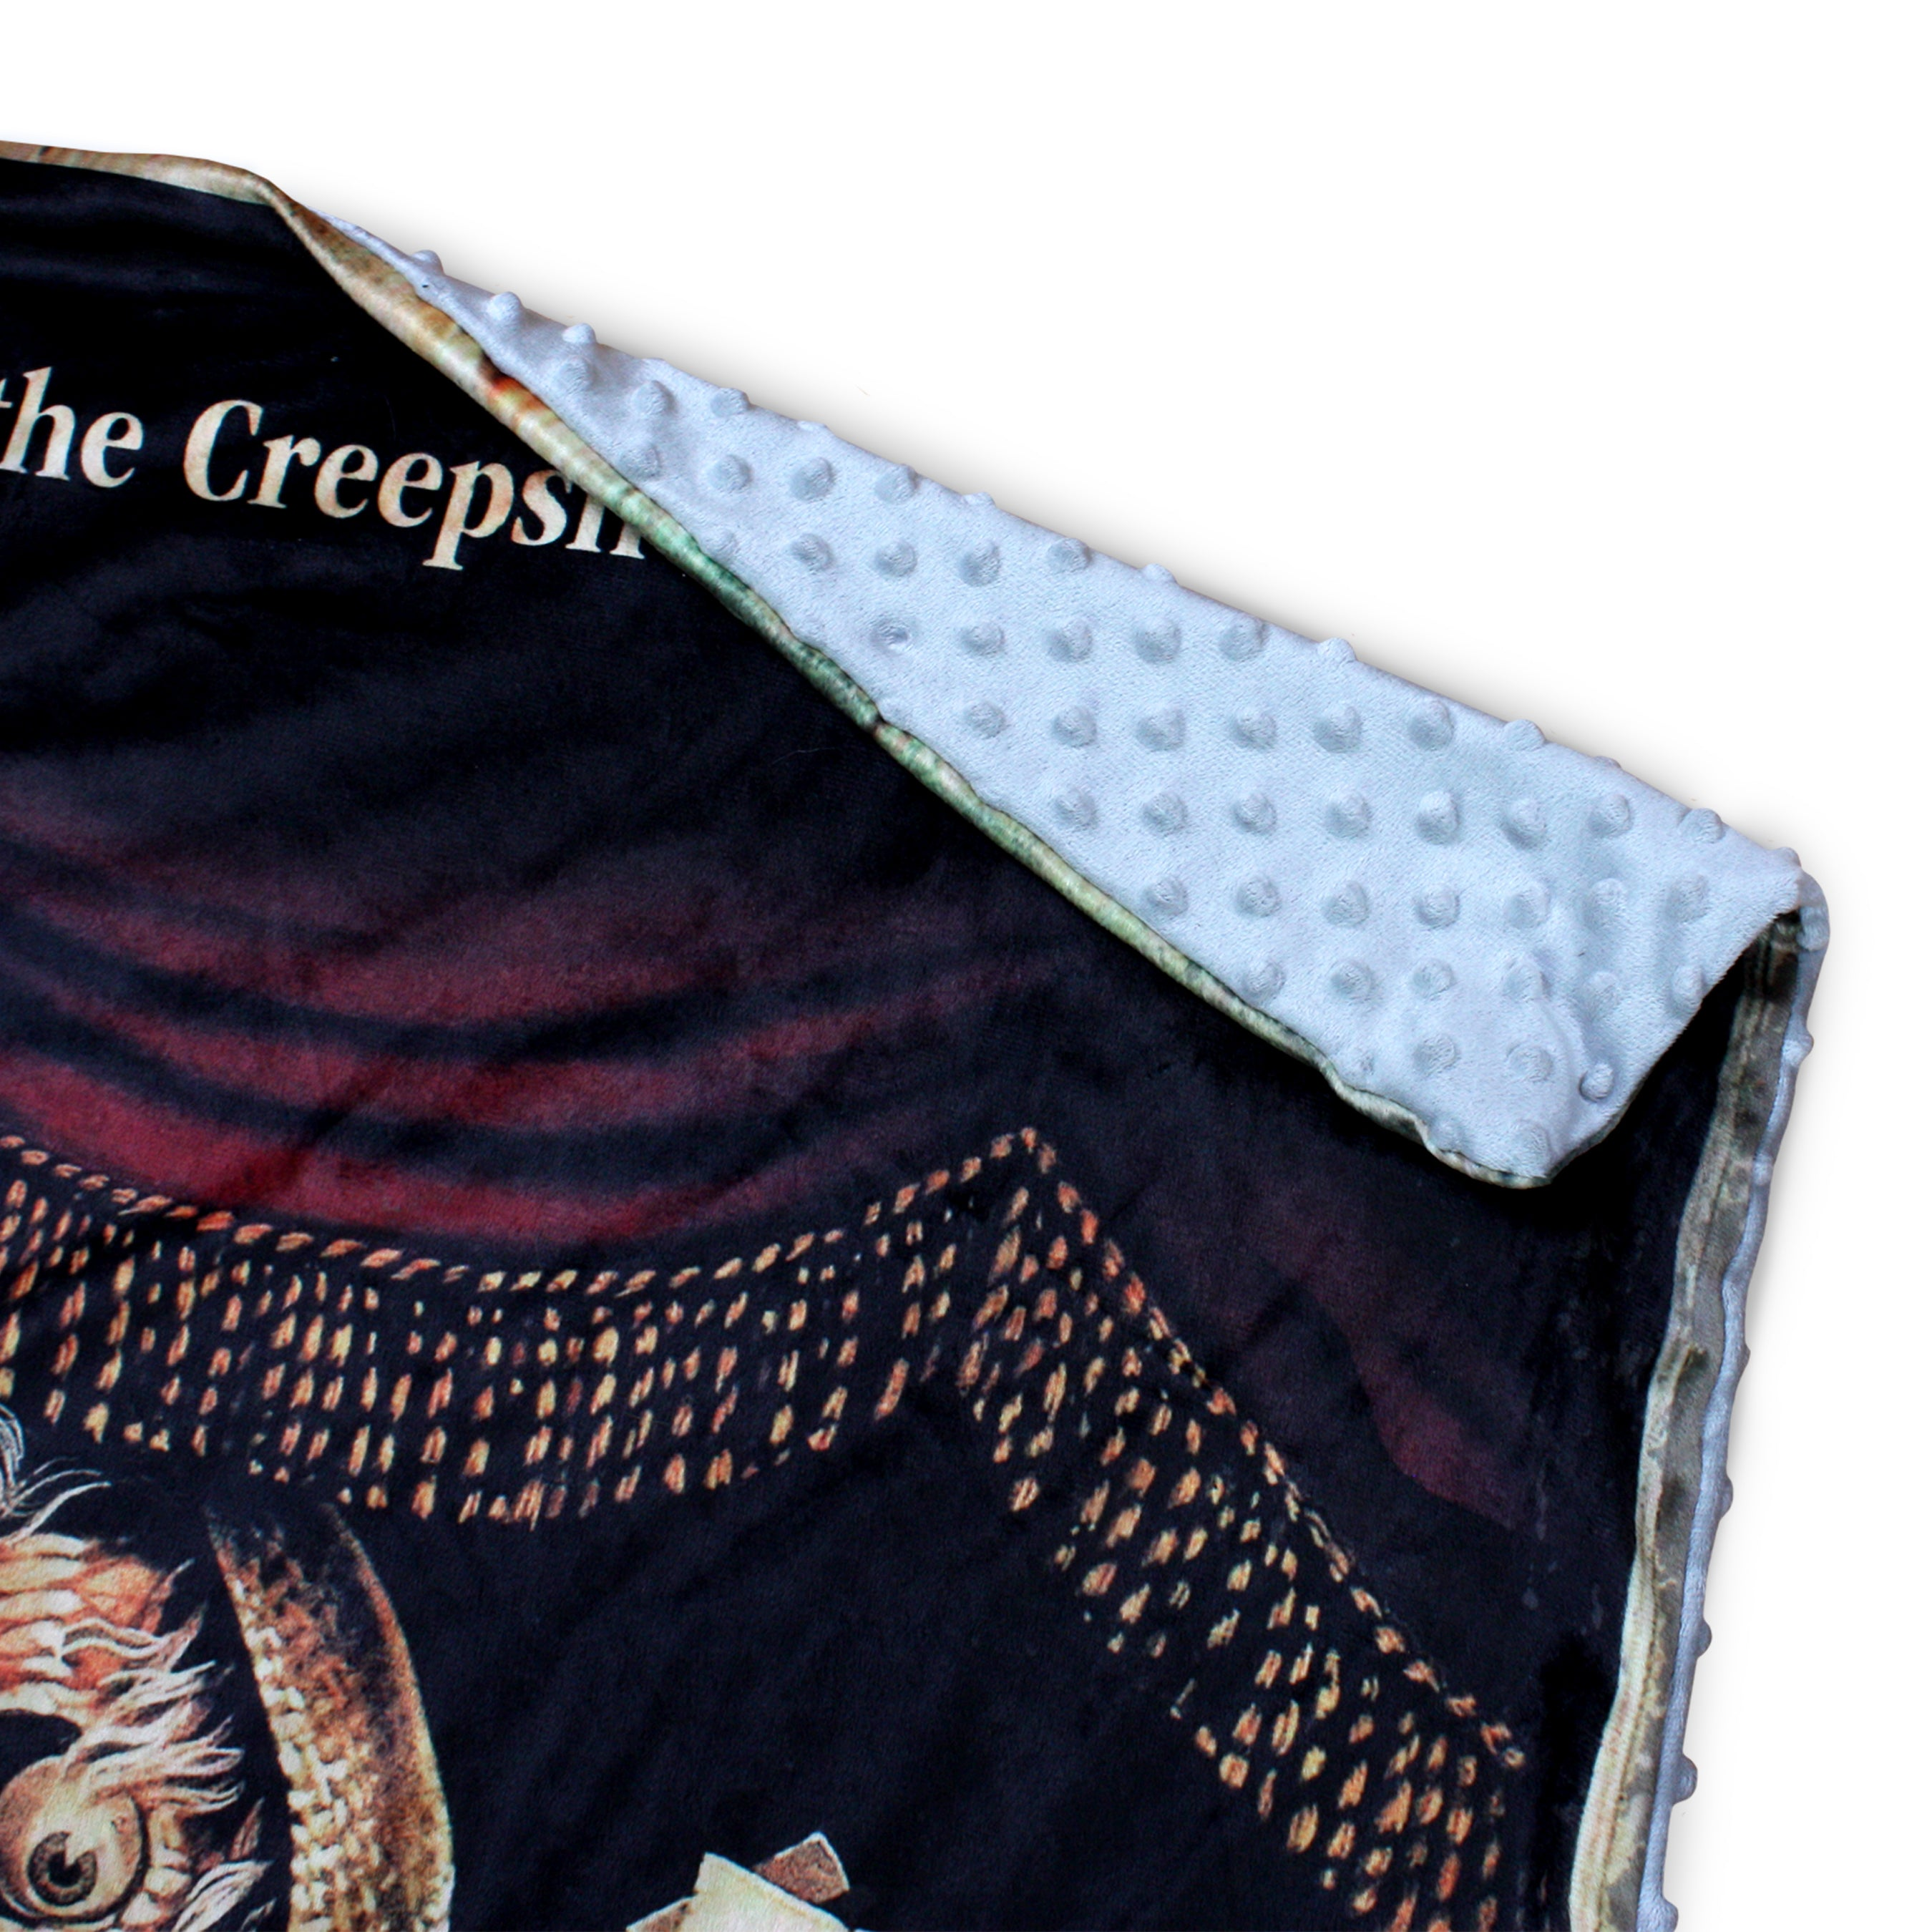 Creepshow VHS Throw Blanket